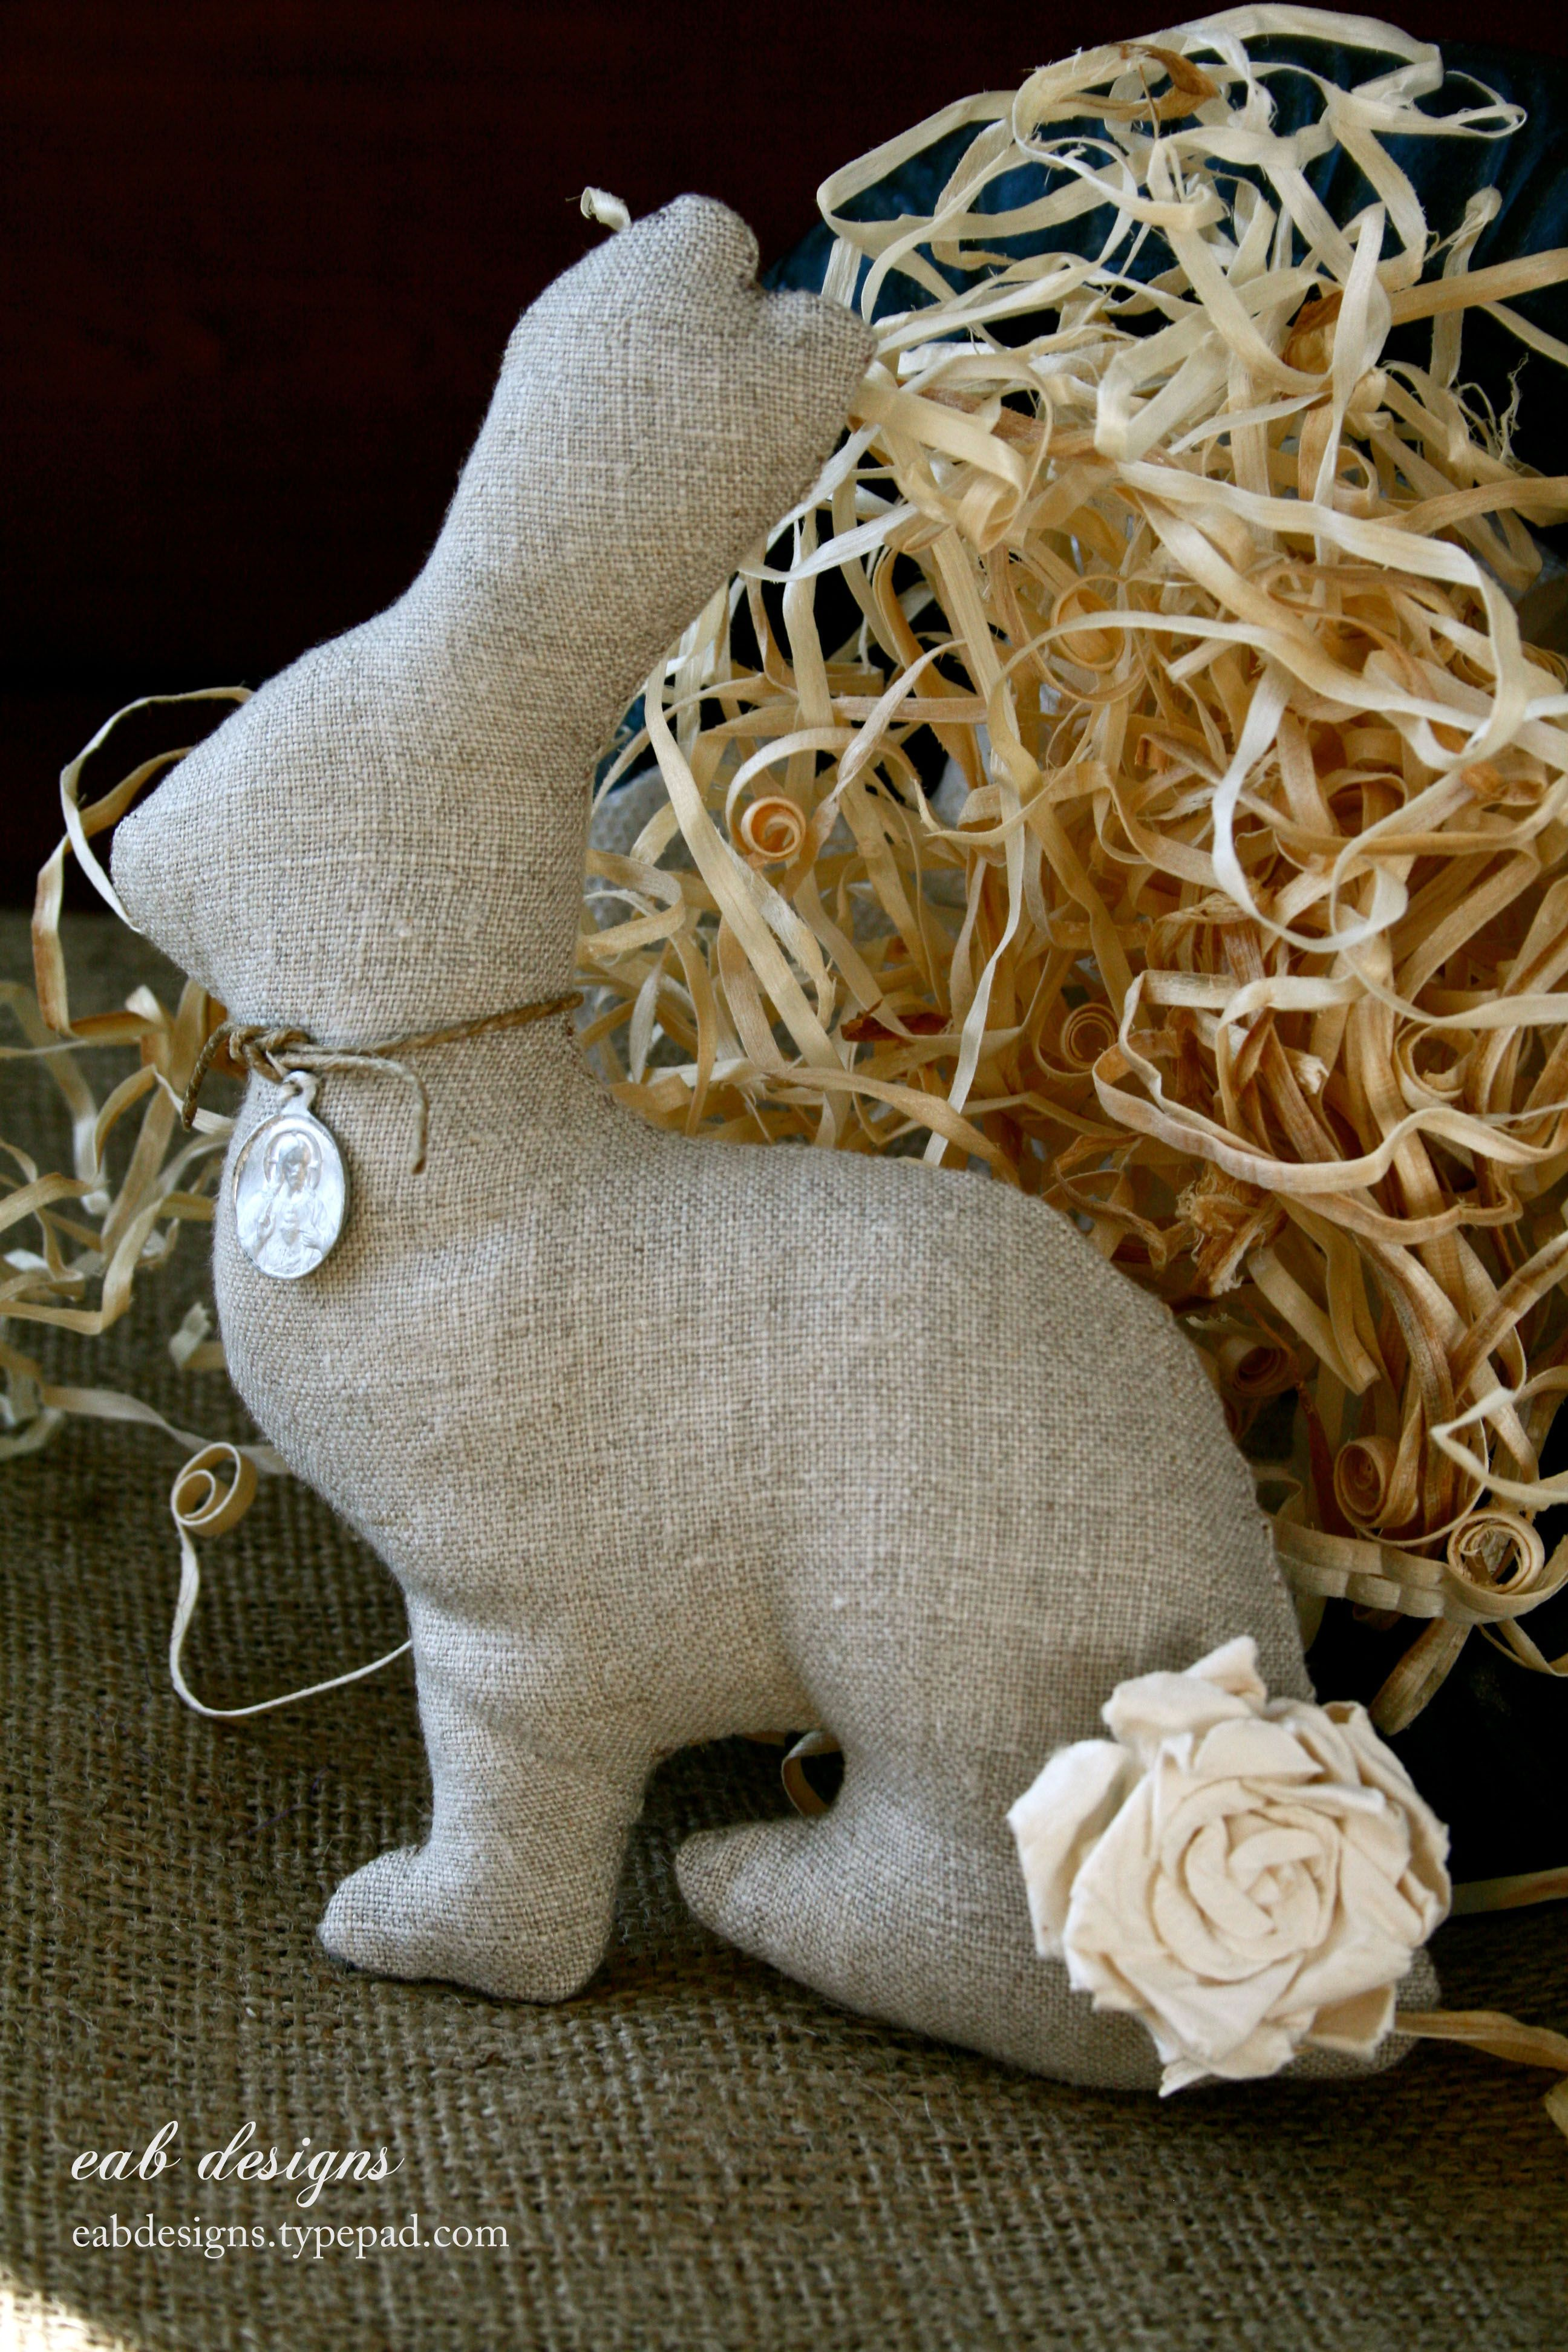 Stuffed linen bunny made by julie at eab designs. For a free template & tutorial visit http://www.eabdesigns.typepad.com